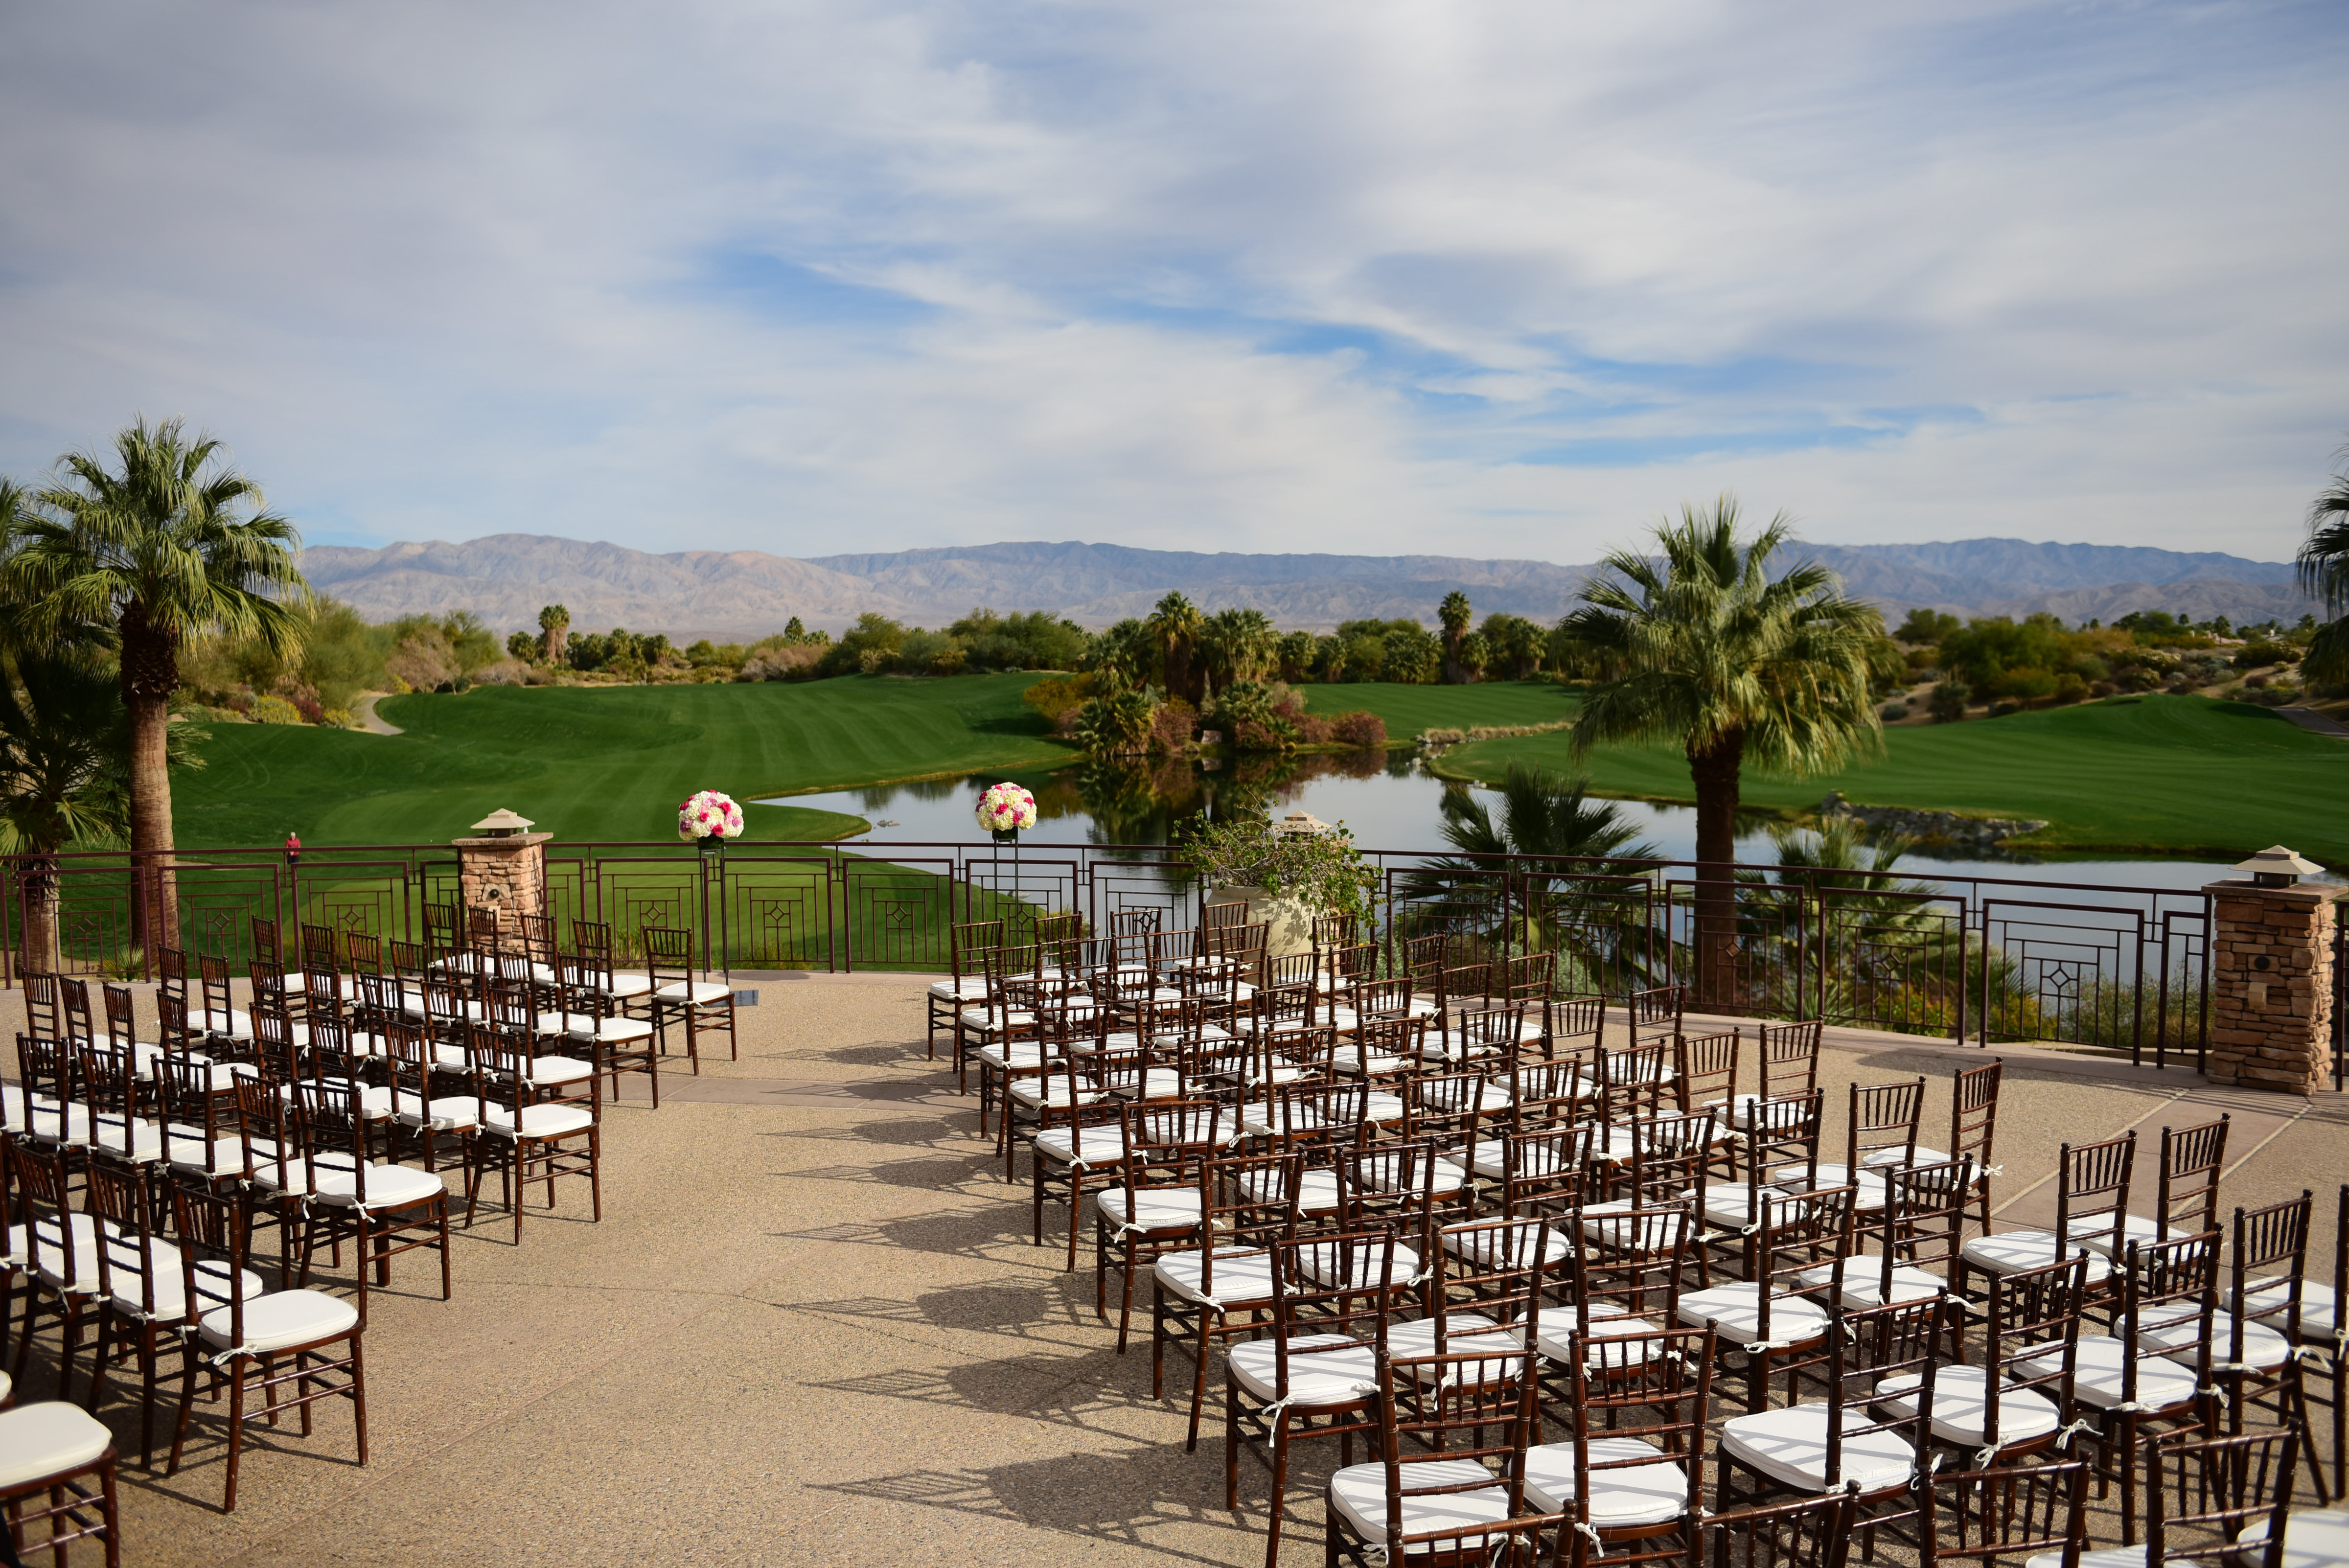 Lakeview Terrace Ceremony Capacity Up To 300 Reception